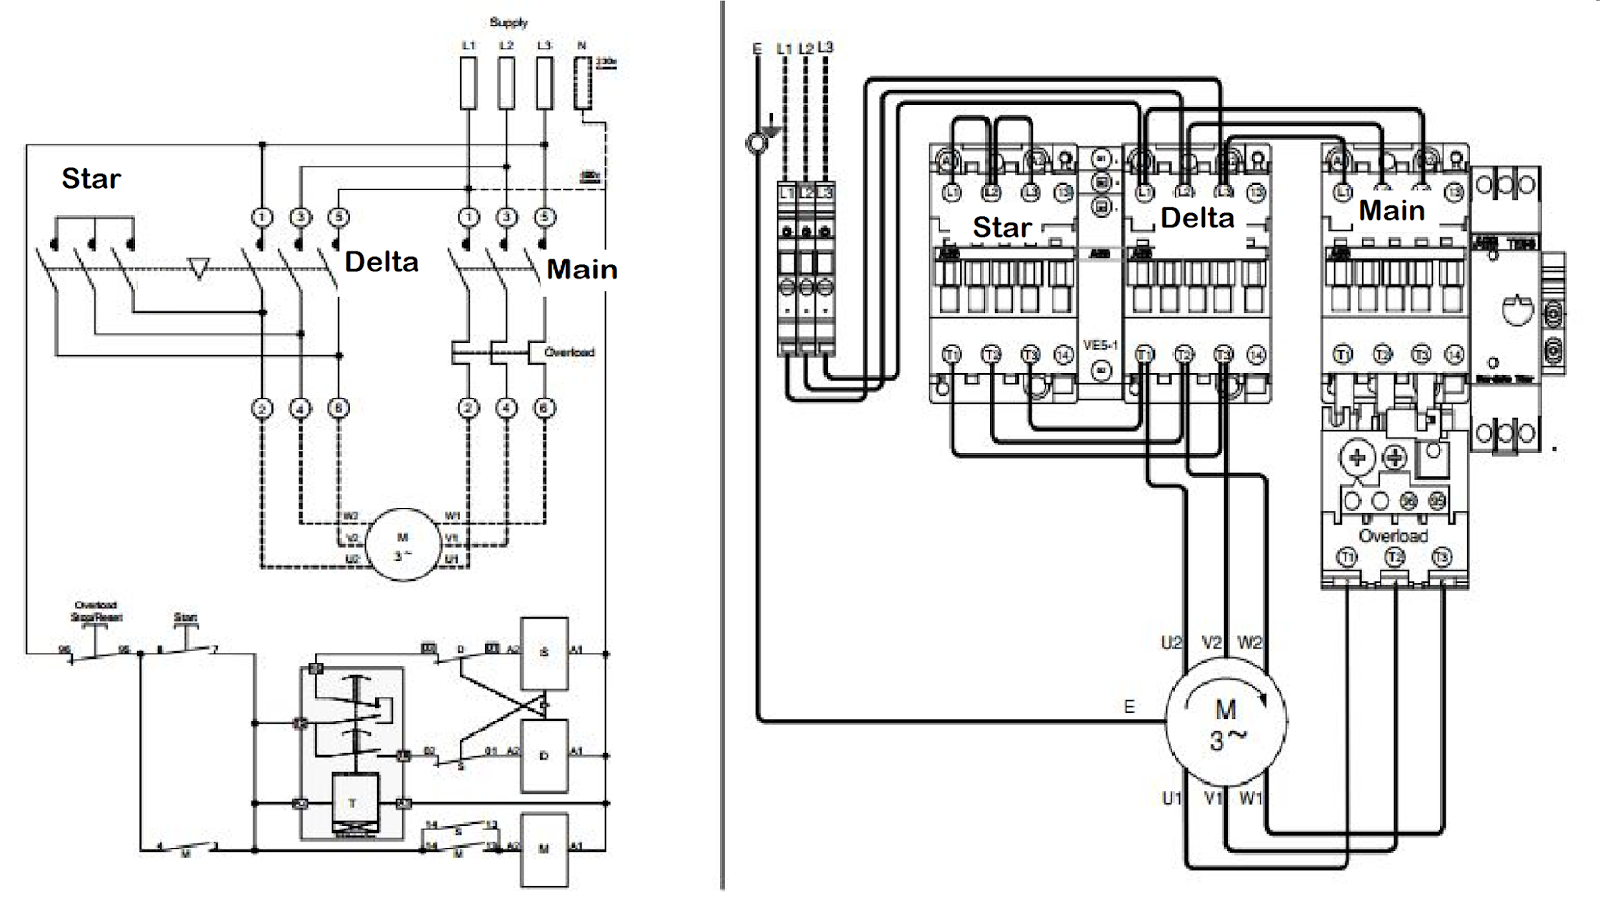 wiring diagram for magnetic contactor with Star Delta Starter Line Diagram And Its on Dol Starter besides Wiring Ex les Phase Solidstate additionally Popular Listings754 further 220v Single Phase Wiring Diagram besides Wound Rotor Motor Diagram.